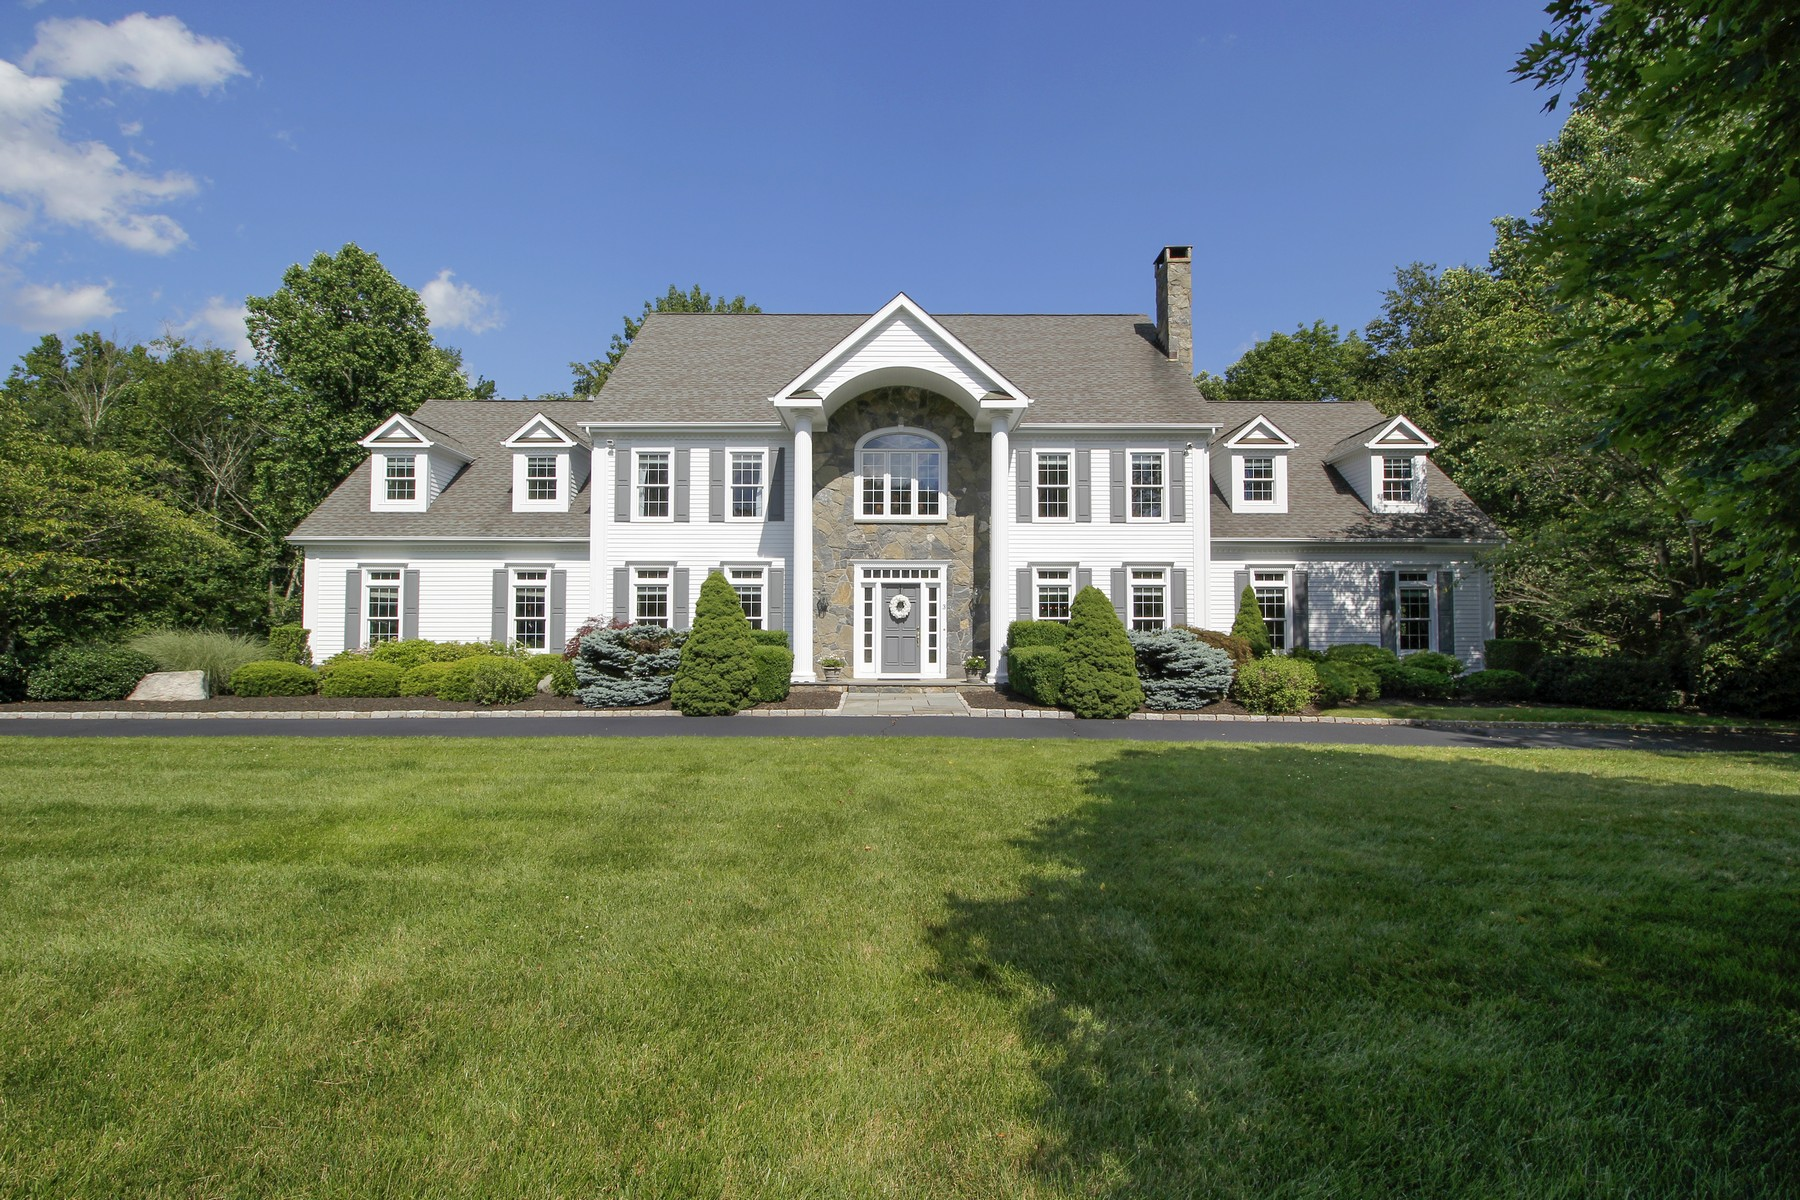 Villa per Vendita alle ore TIMELESS APPEAL 3 Robin Hood Lane Easton, Connecticut 06612 Stati Uniti